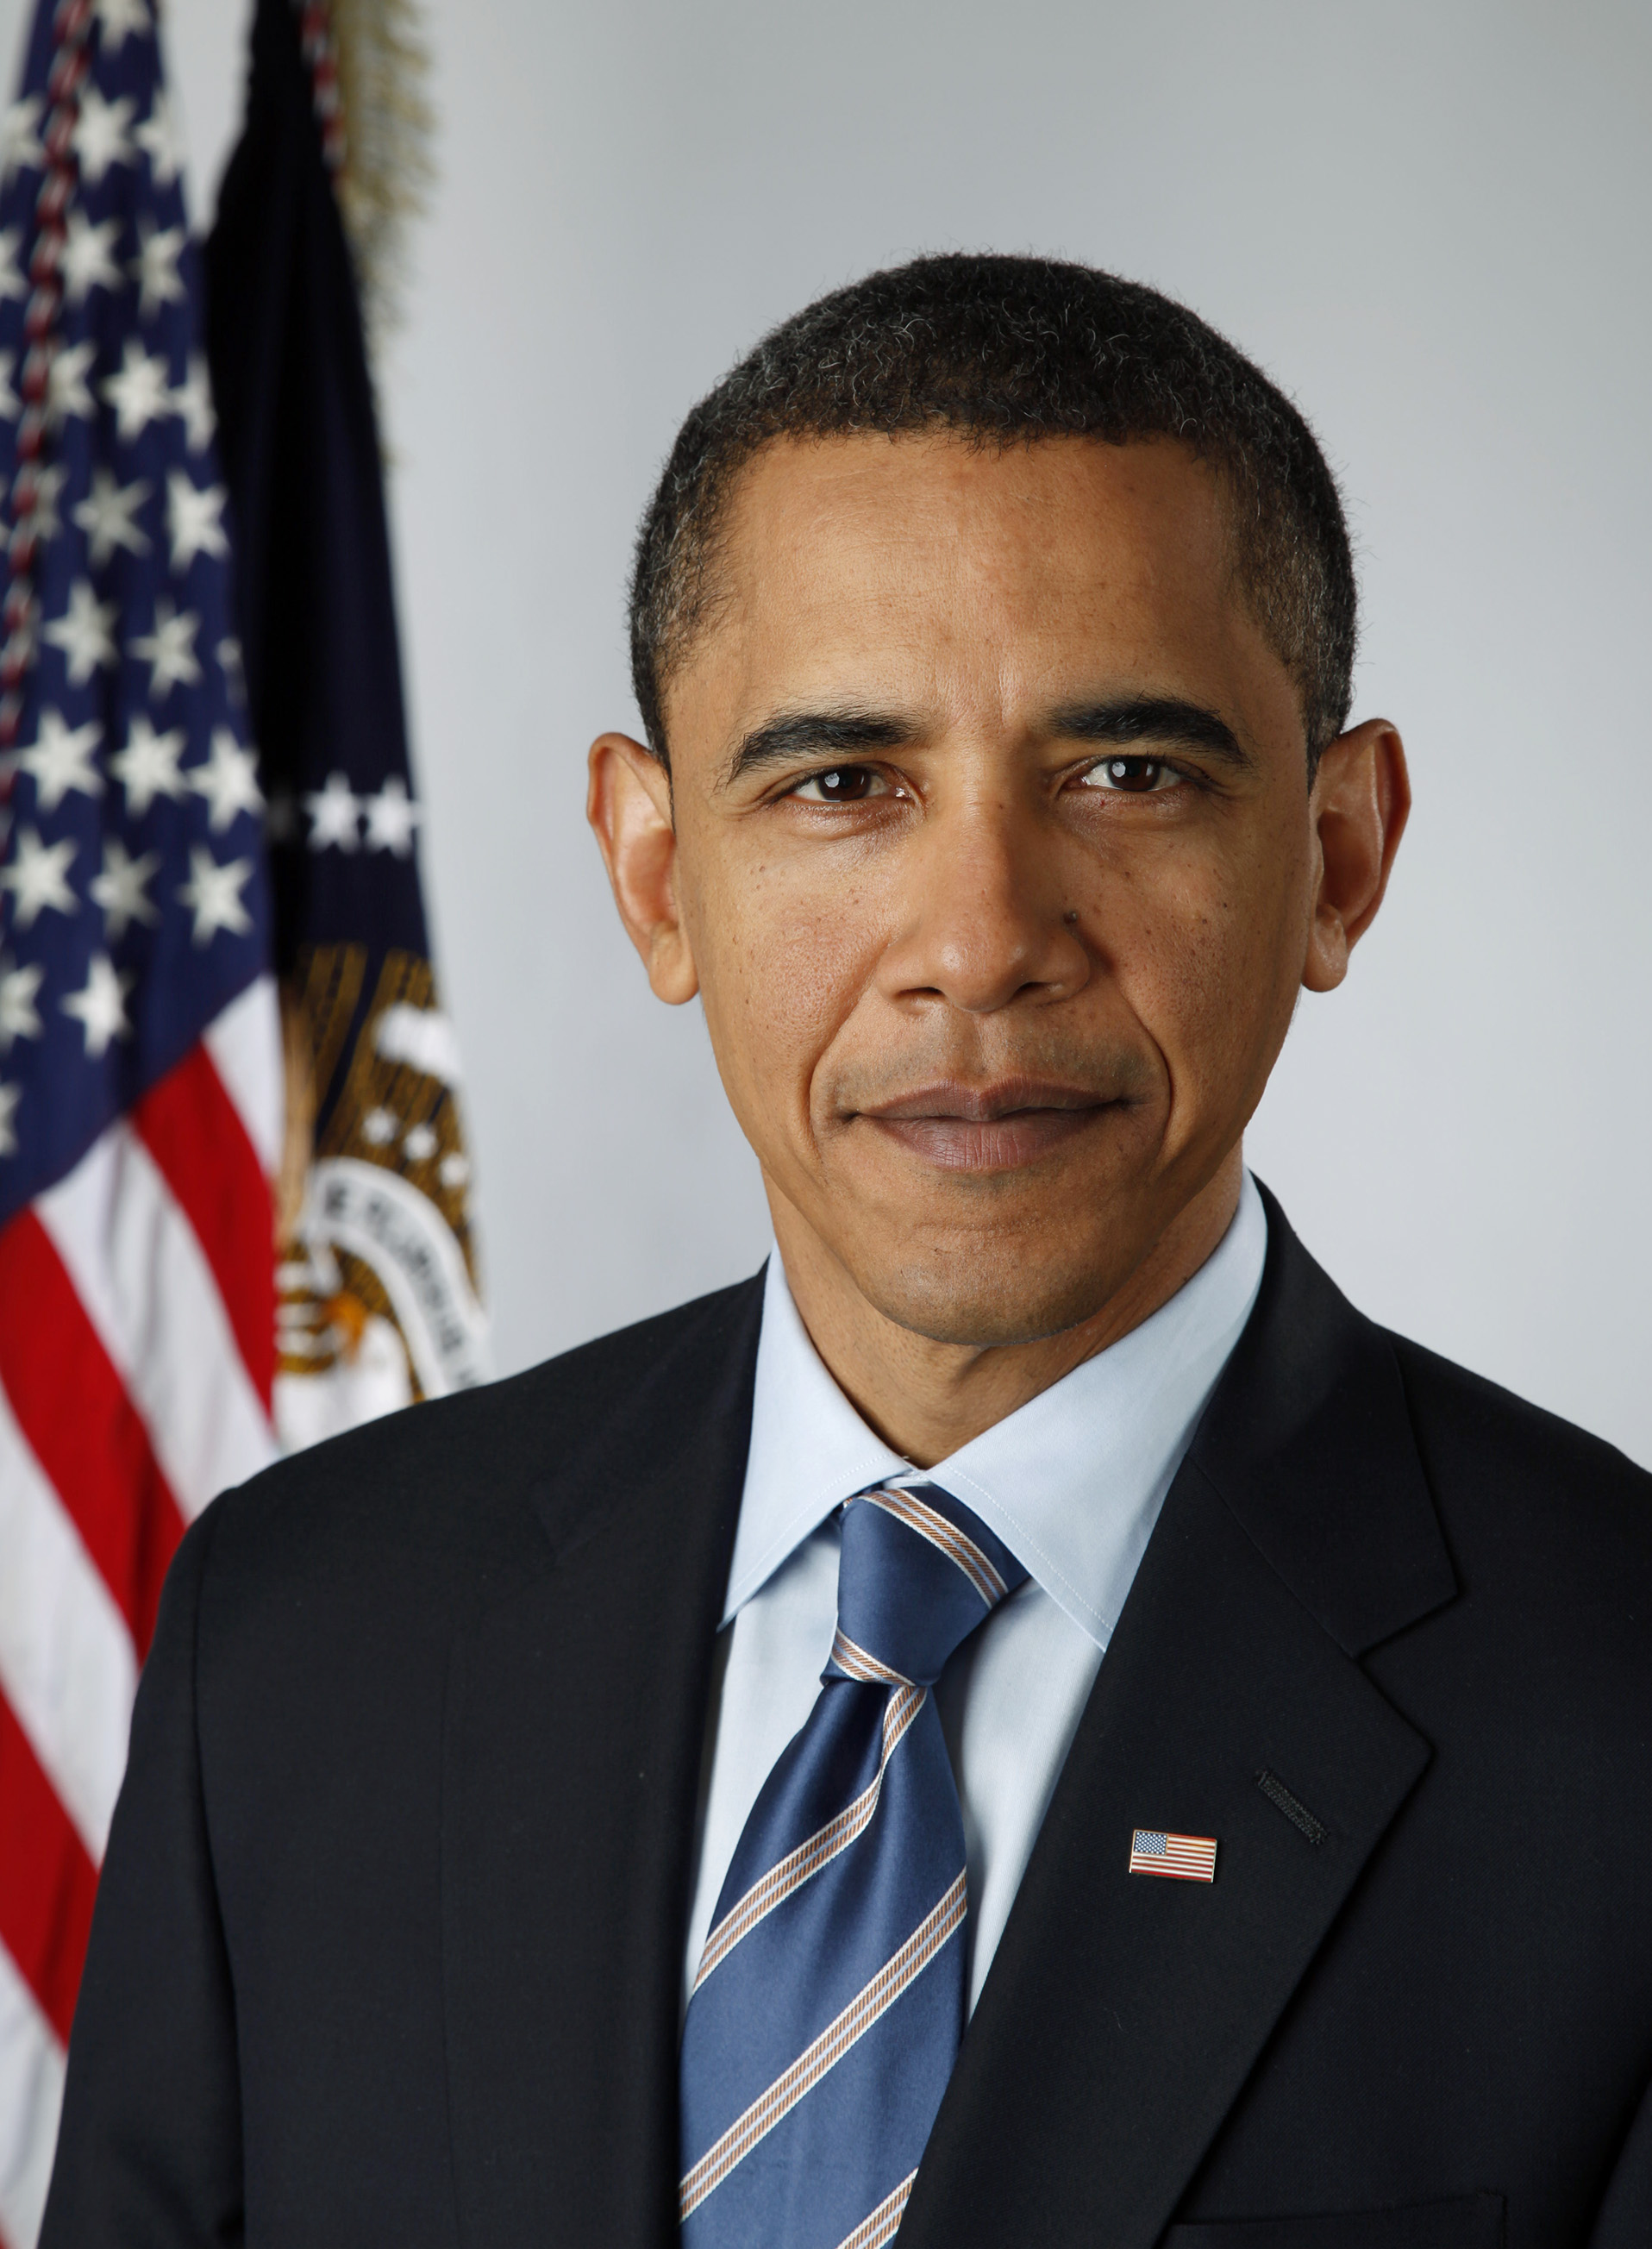 A portrait shot of Barack Obama, looking straight ahead. He has short black hair, and is wearing a dark navy blazer with a blue striped tie over a light blue collared shirt. In the background are two flags hanging from separate flagpoles: the American flag, and the flag of the Executive Office of the President.